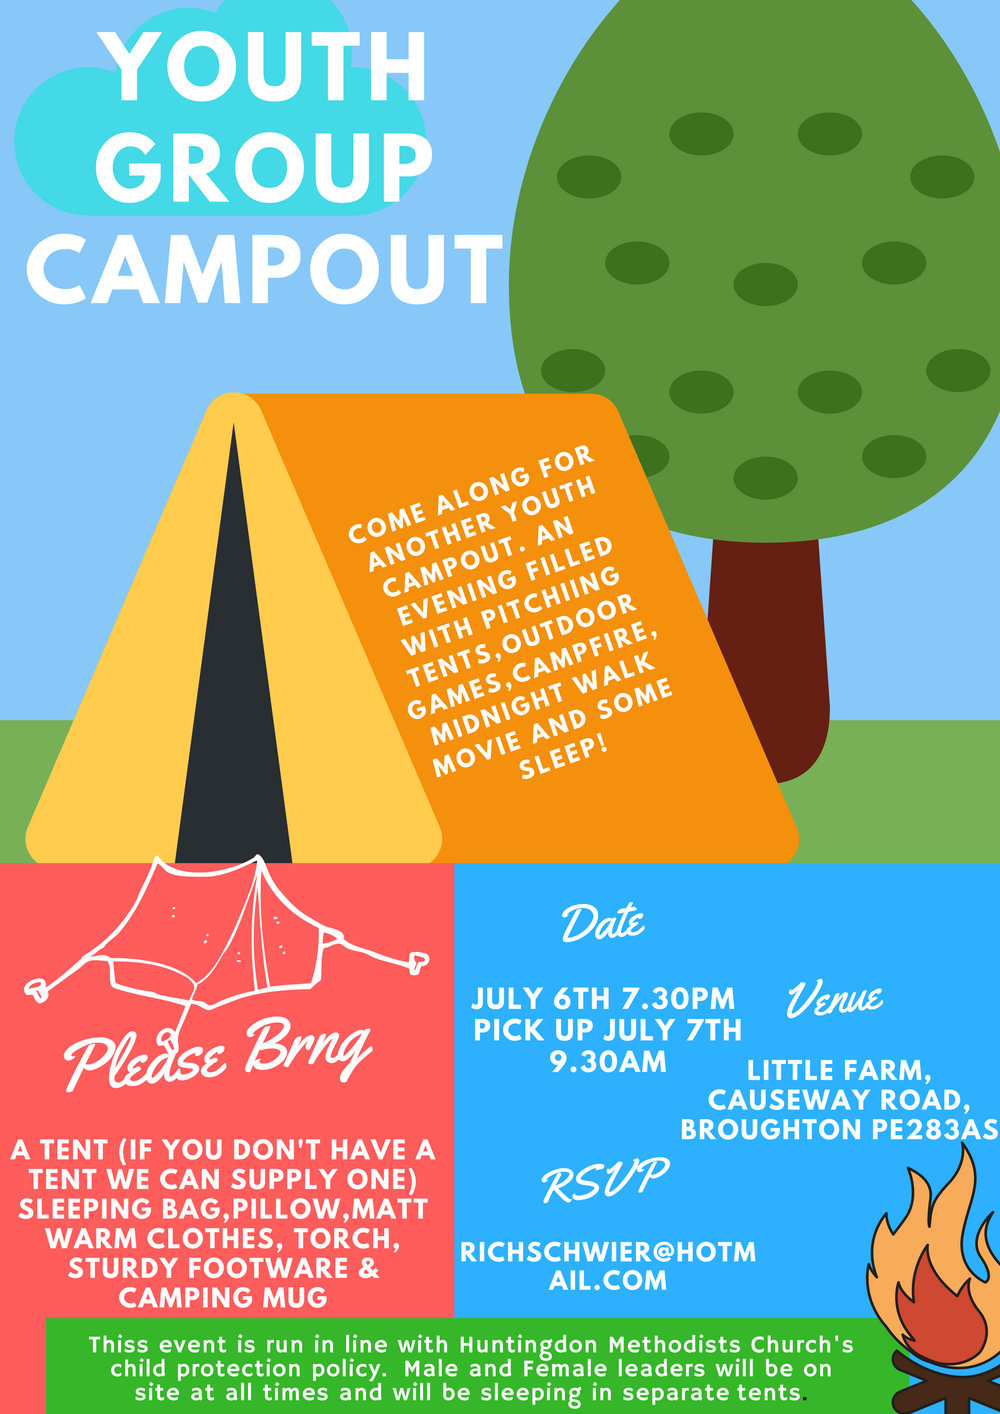 Youth Camp Out 18.jpg